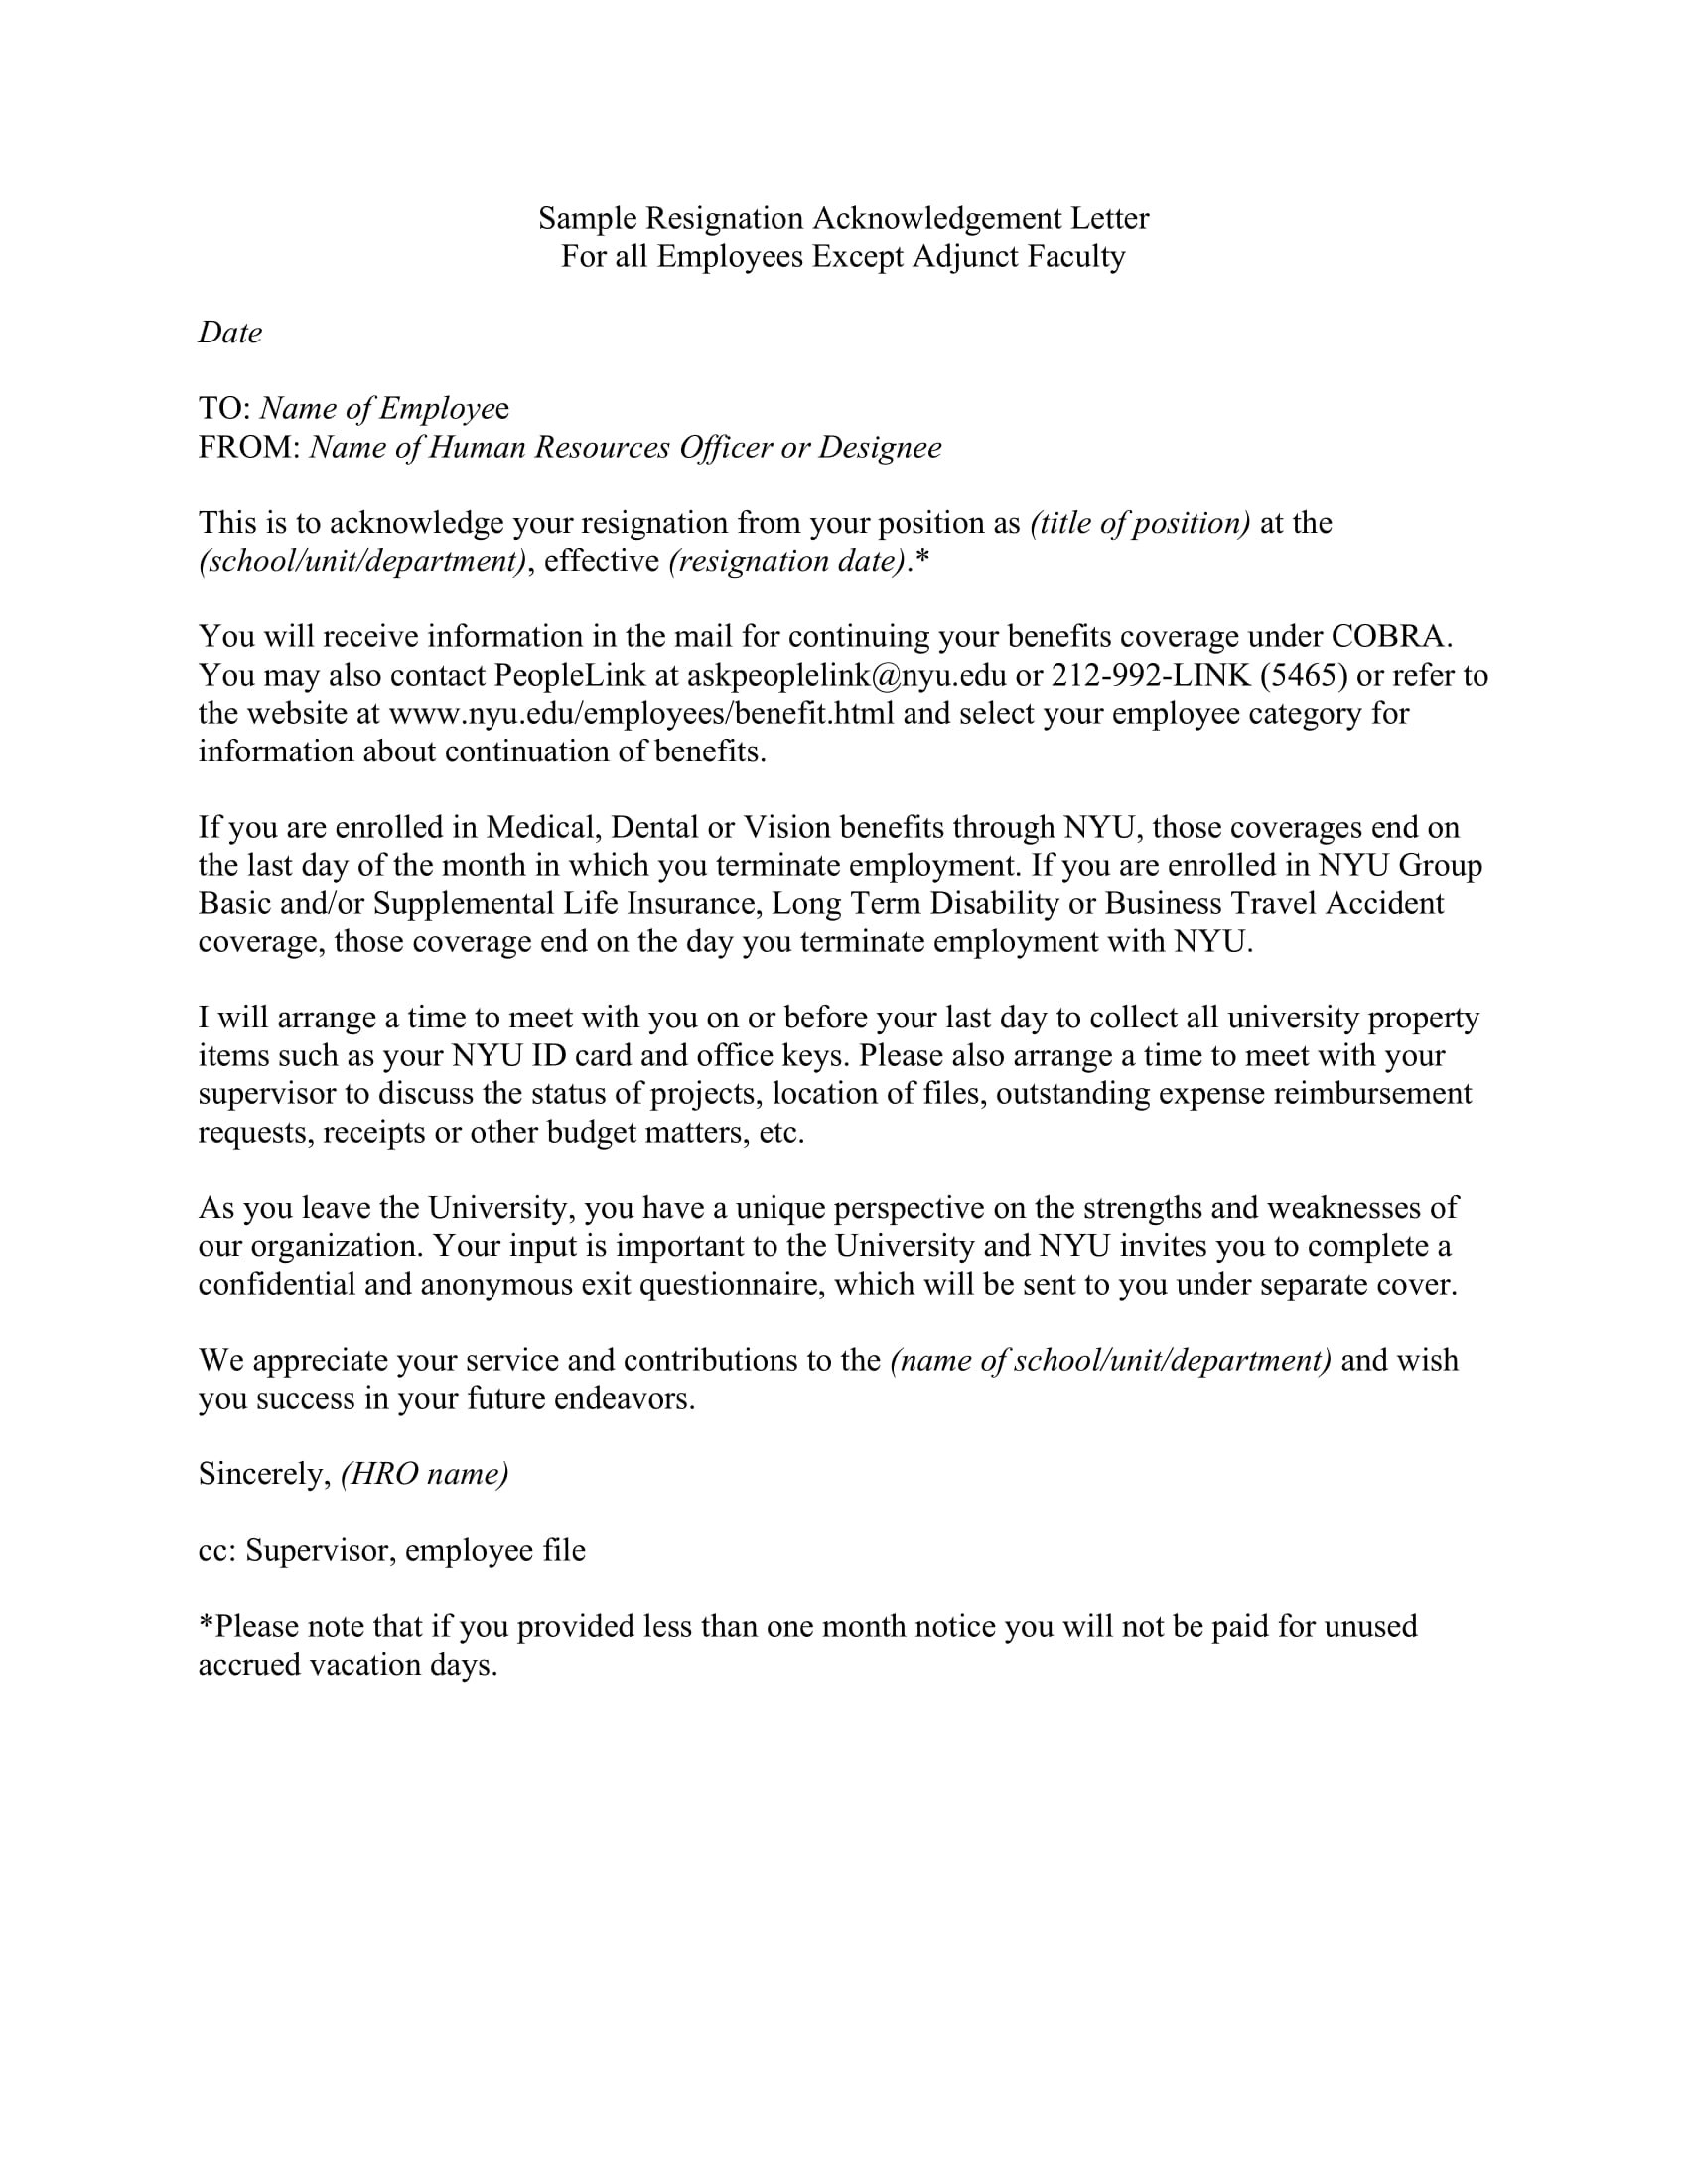 Acknowledgement Of Resignation Letter Examples